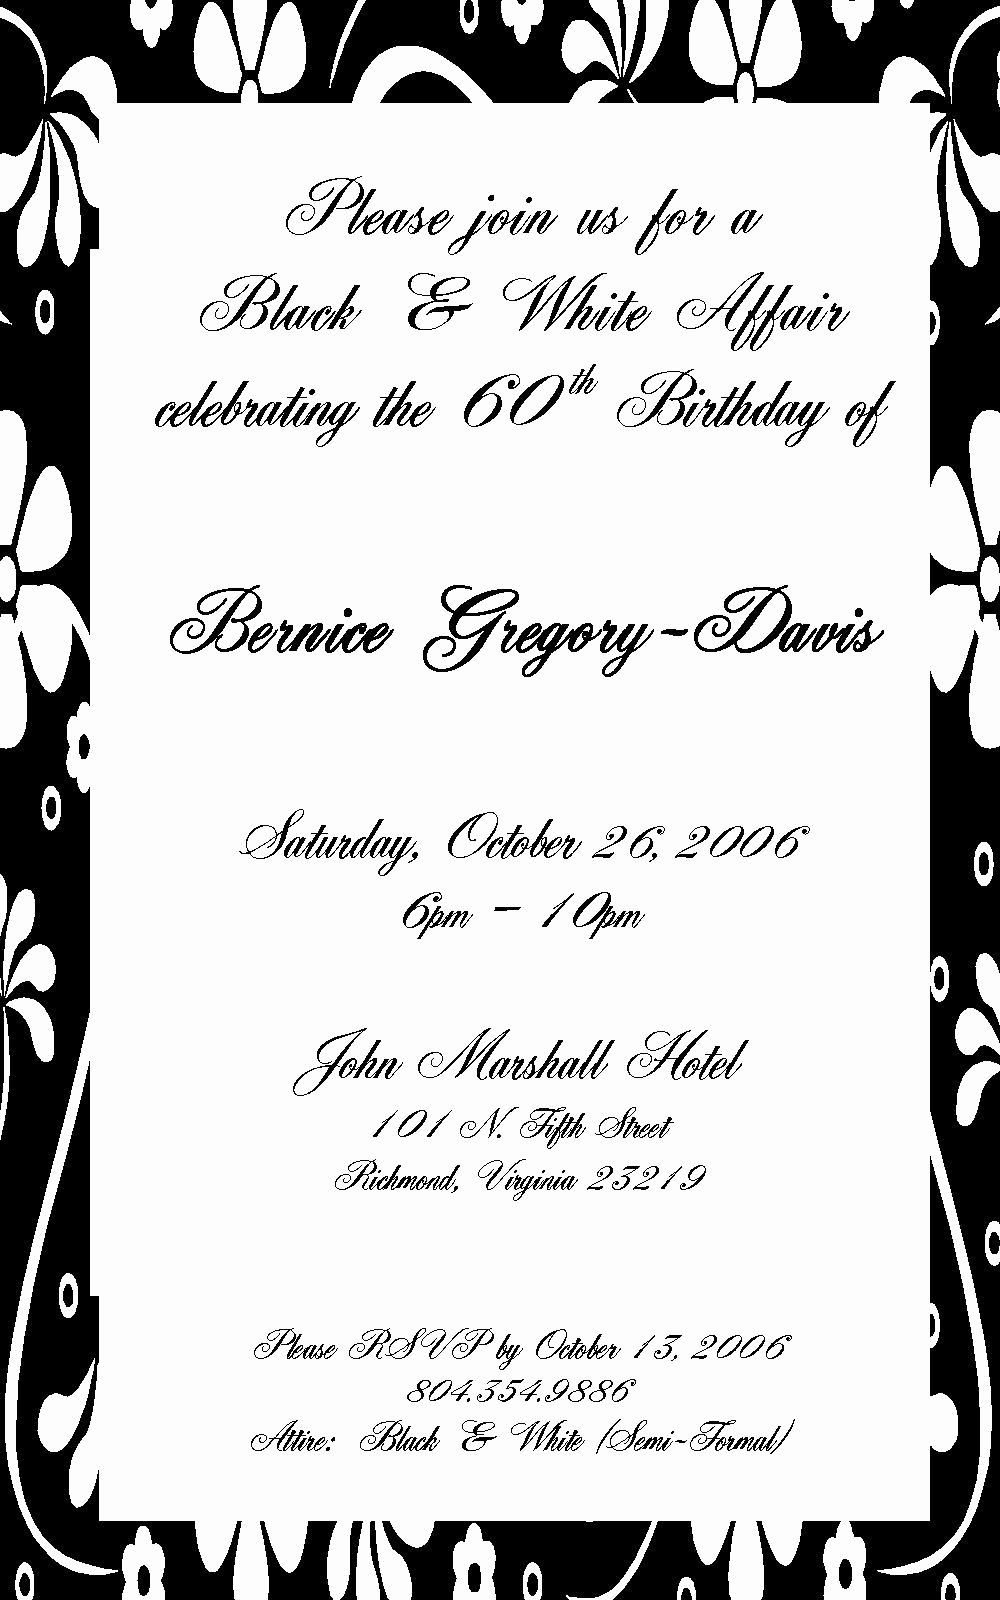 Birthday Dinner Invitation Wording Fresh Birthday Invitation Sample Party Invitation